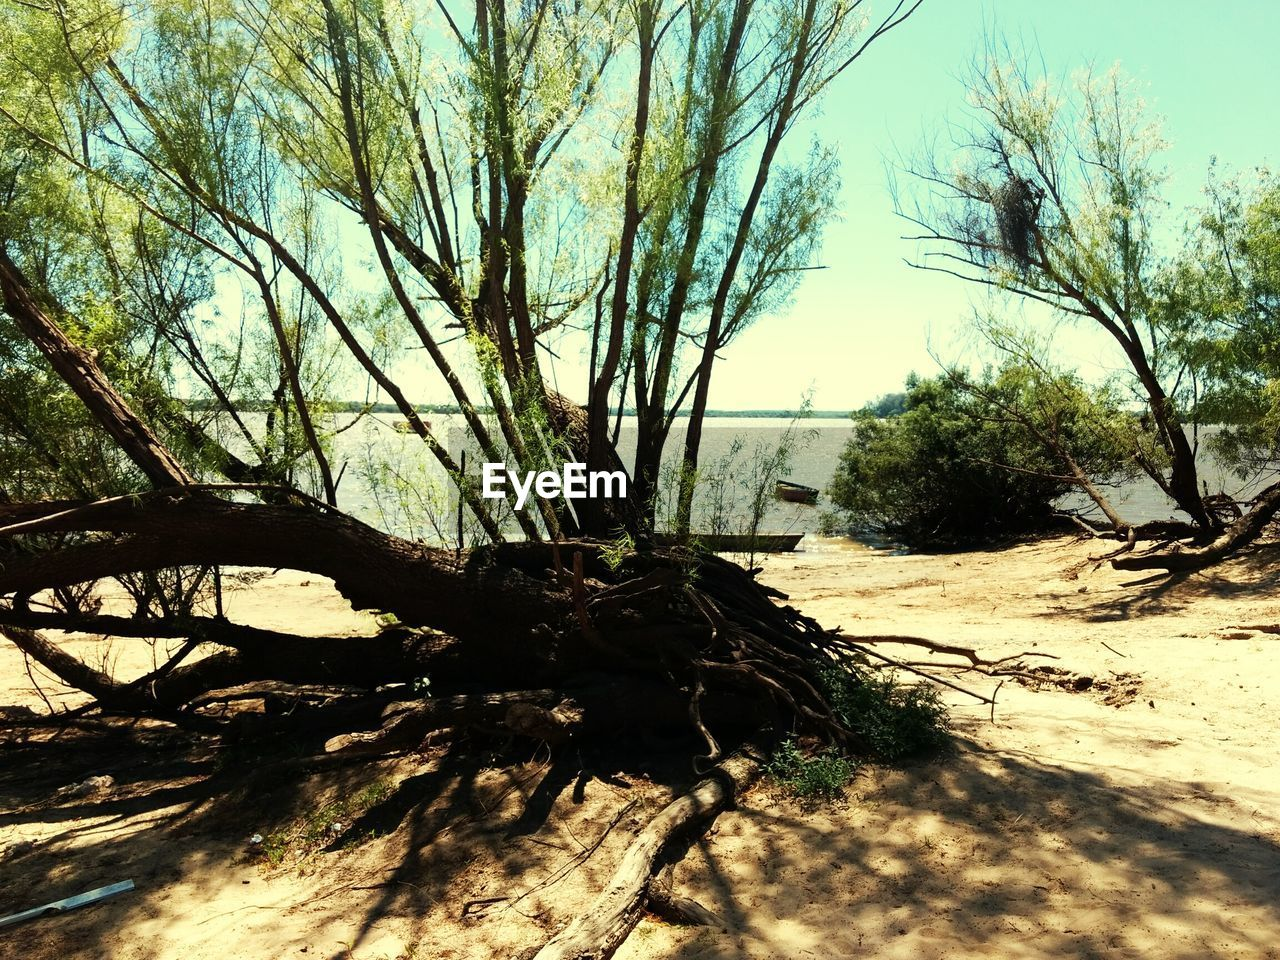 tree, sand, nature, day, sunlight, tranquility, branch, no people, tree trunk, outdoors, tranquil scene, beauty in nature, growth, bare tree, shadow, dead tree, scenics, sky, arid climate